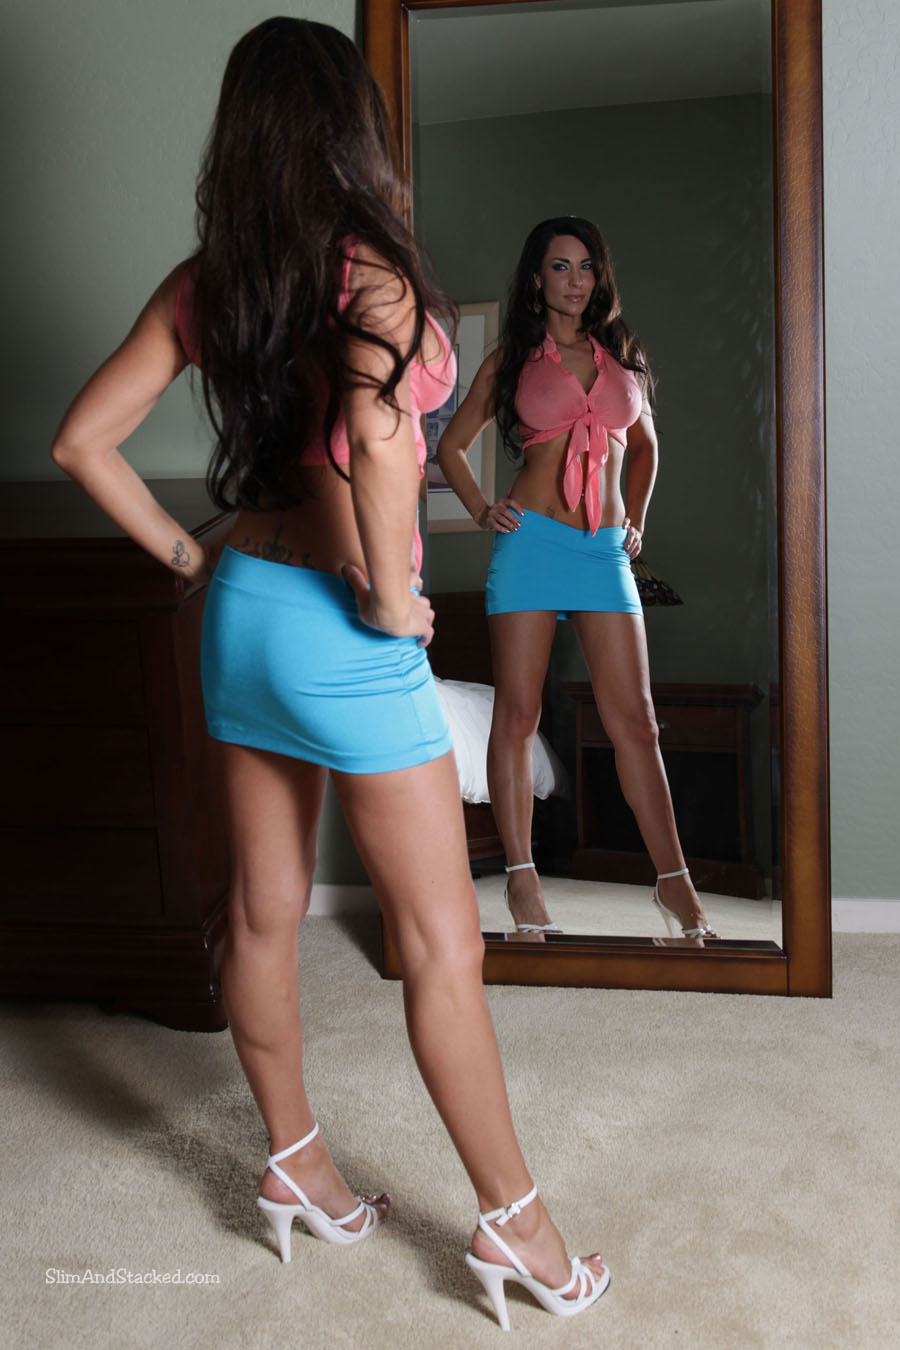 Mirror, mirror, on the wall. Is Laura Lee the sexiest of them all? Well, it she's not, she's certainly in the top ten! See for yourself, by owning these ultra high quality images of Laura, in stunning 3000-pixel resolution. Contact dezertimagez@gmail.com for set pricing.